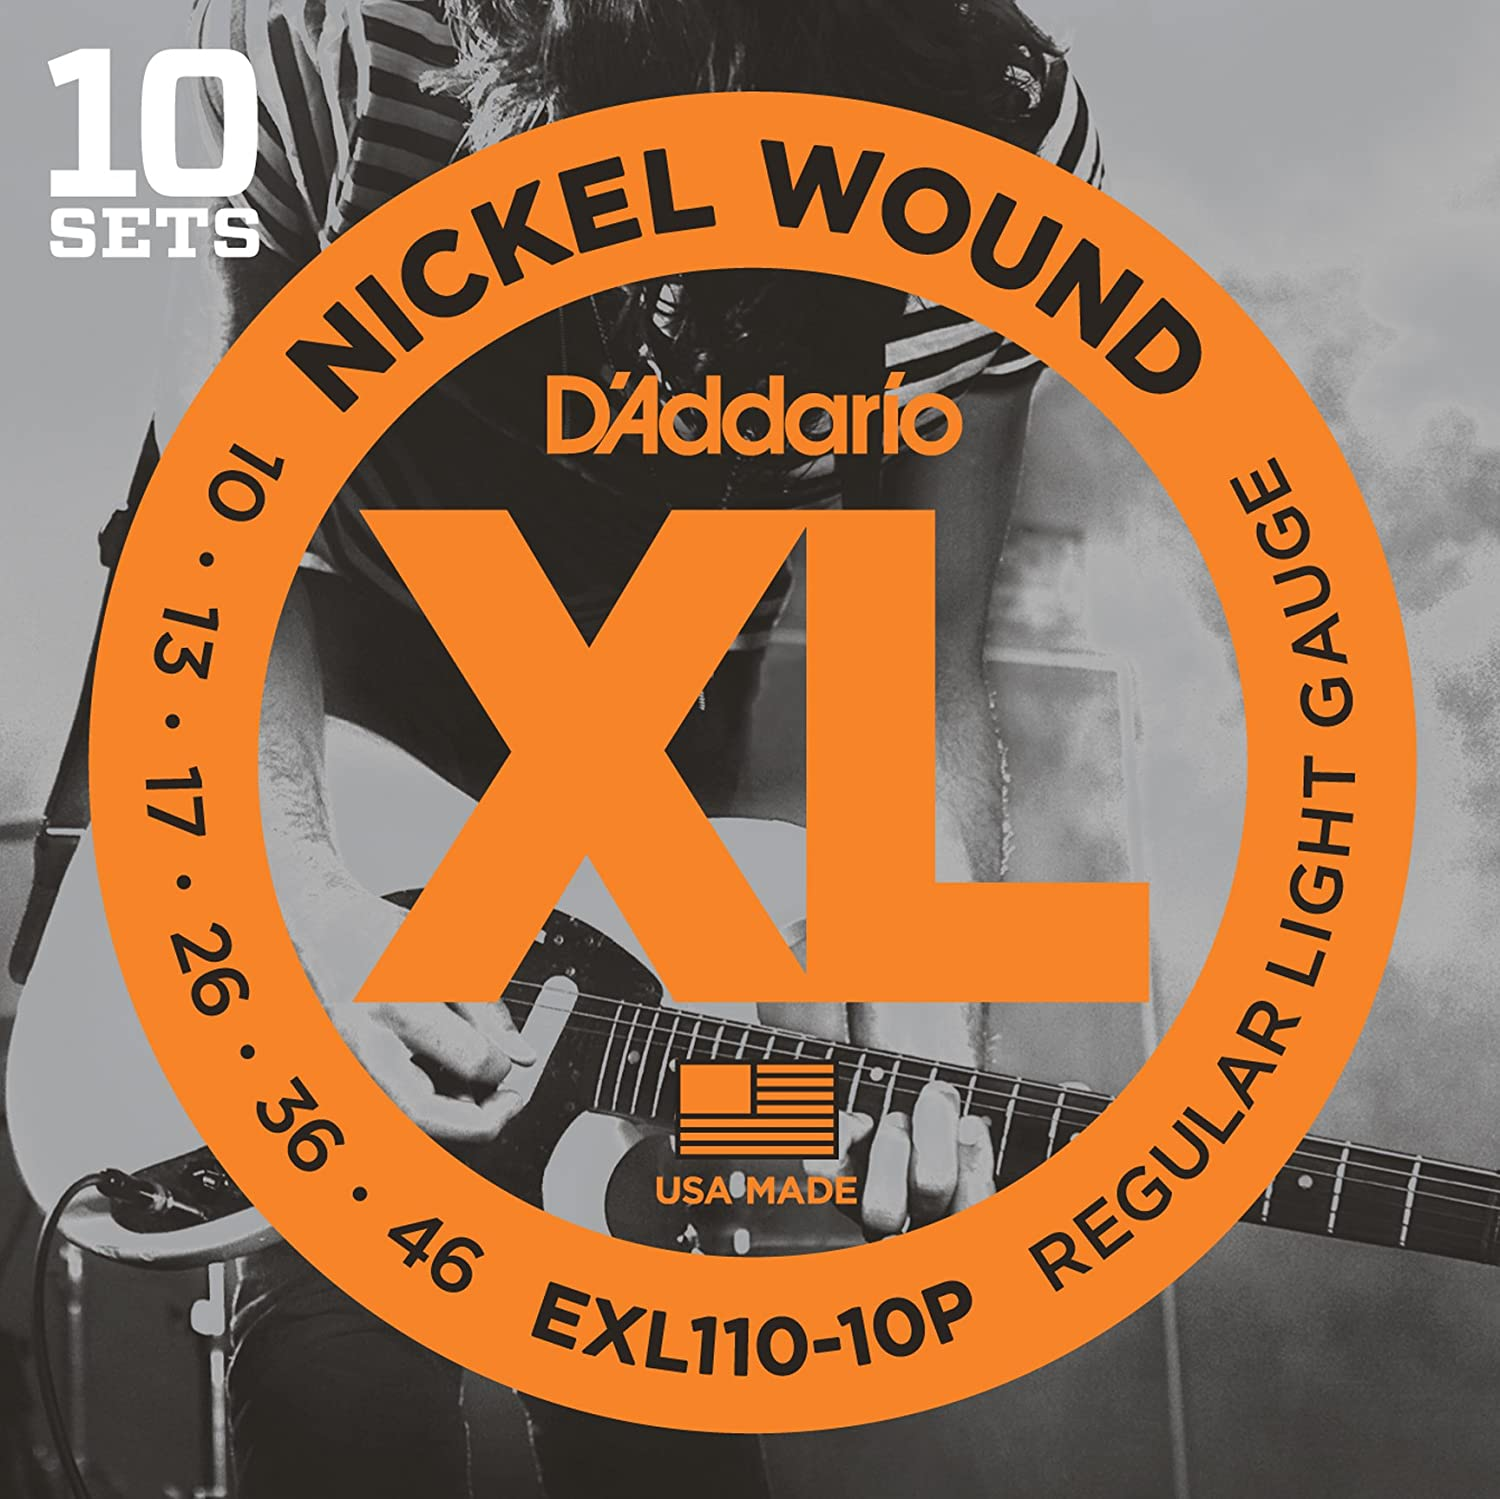 D'Addario EXL110-10P Nickel Wound Electric Guitar Strings, Regular Light, 10-46, 10 Sets D' Addario